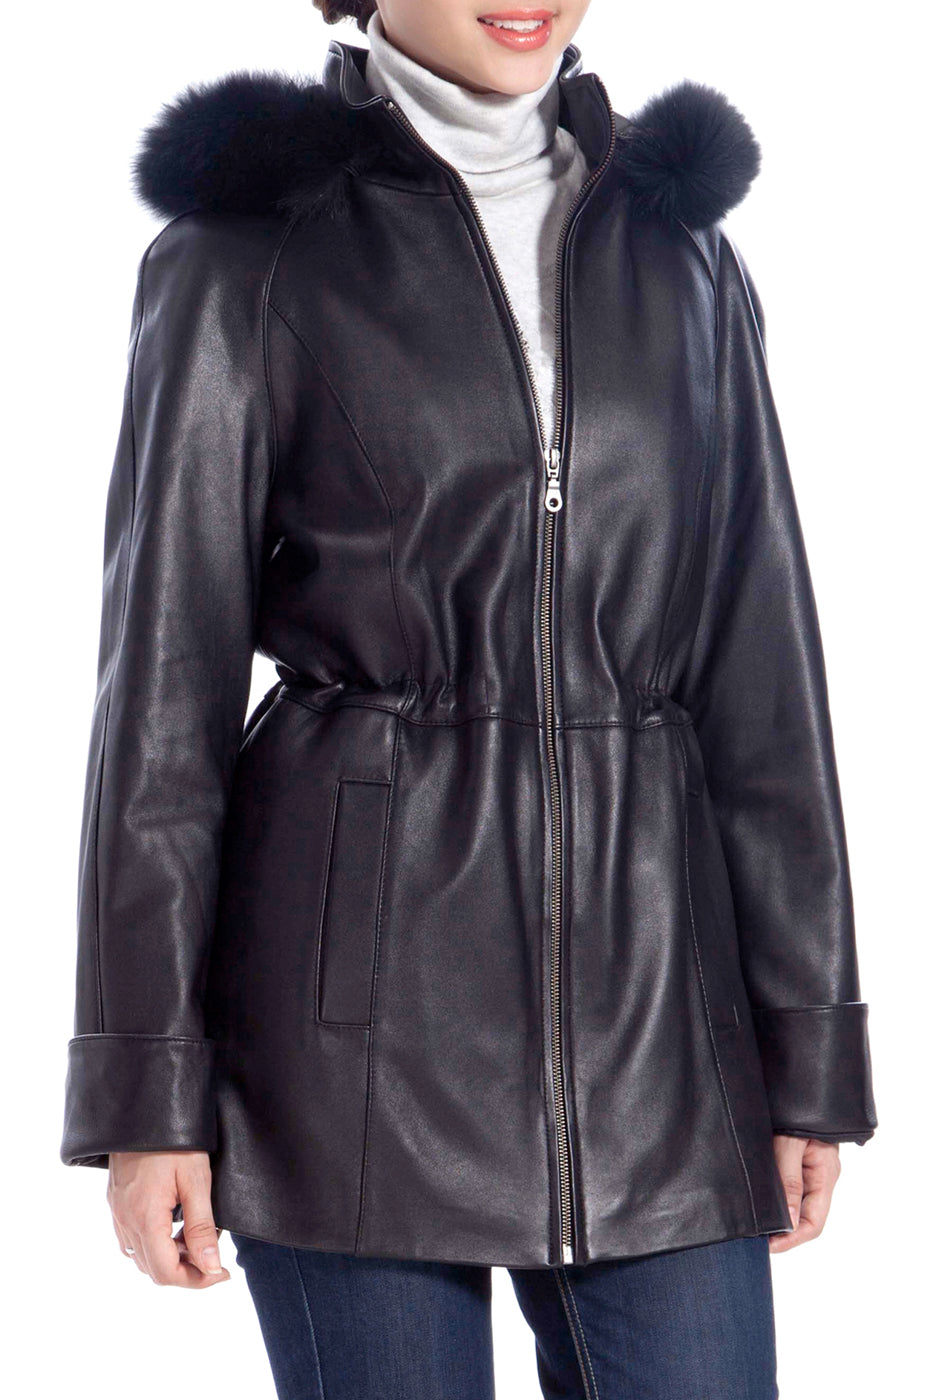 BGSD Women's Lambskin Leather Hooded Parka Coat - Short